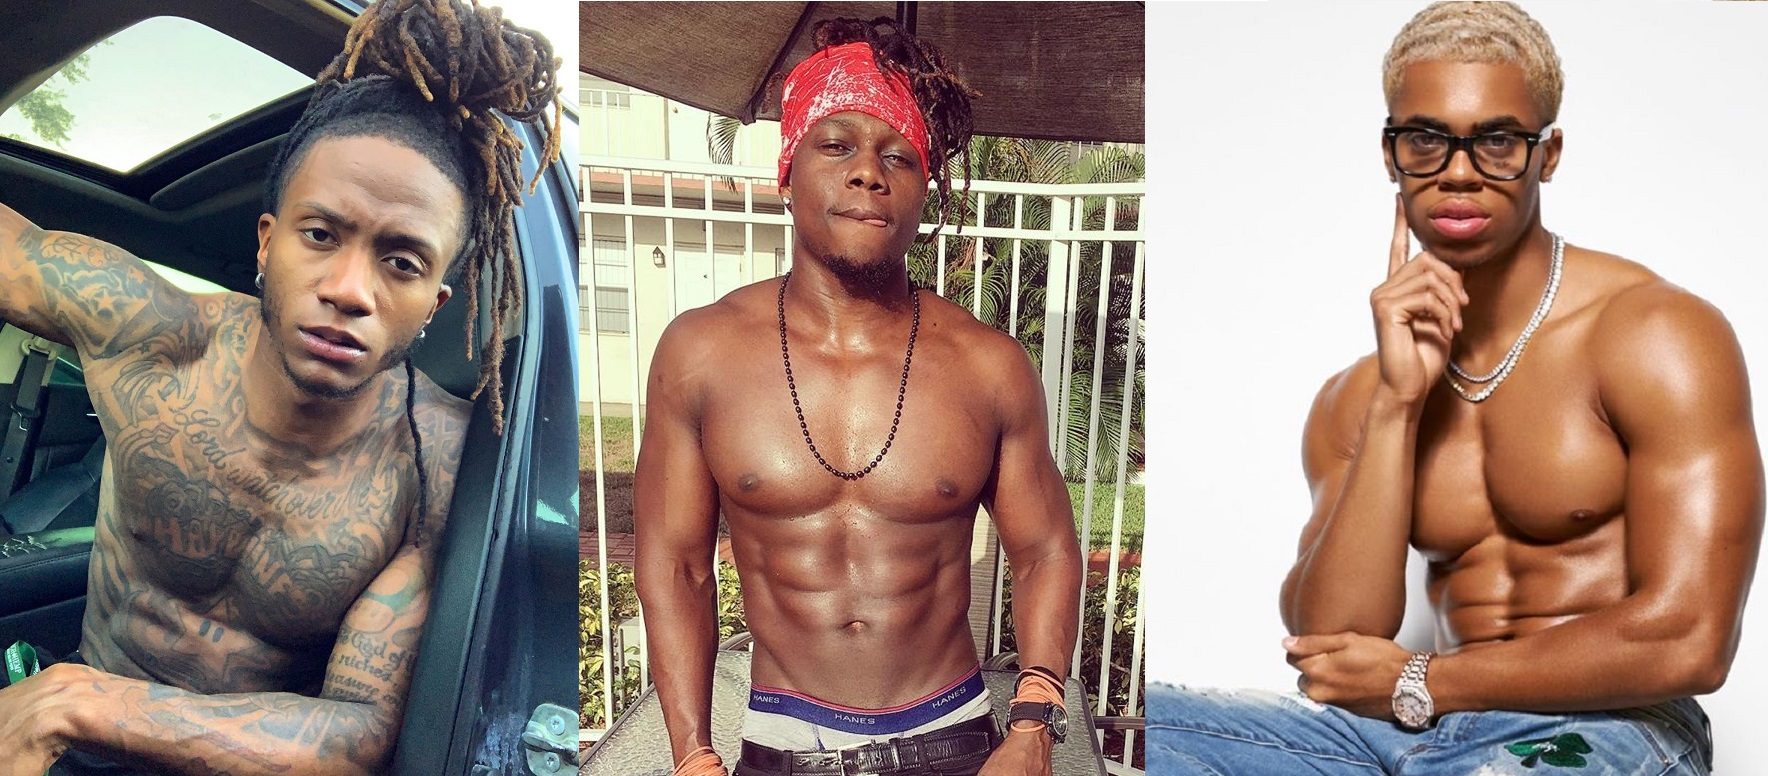 Eye Candy #Zaddy Edition: New Dads Deven Hubbard, EyeHatePhil & Junior Jeannot